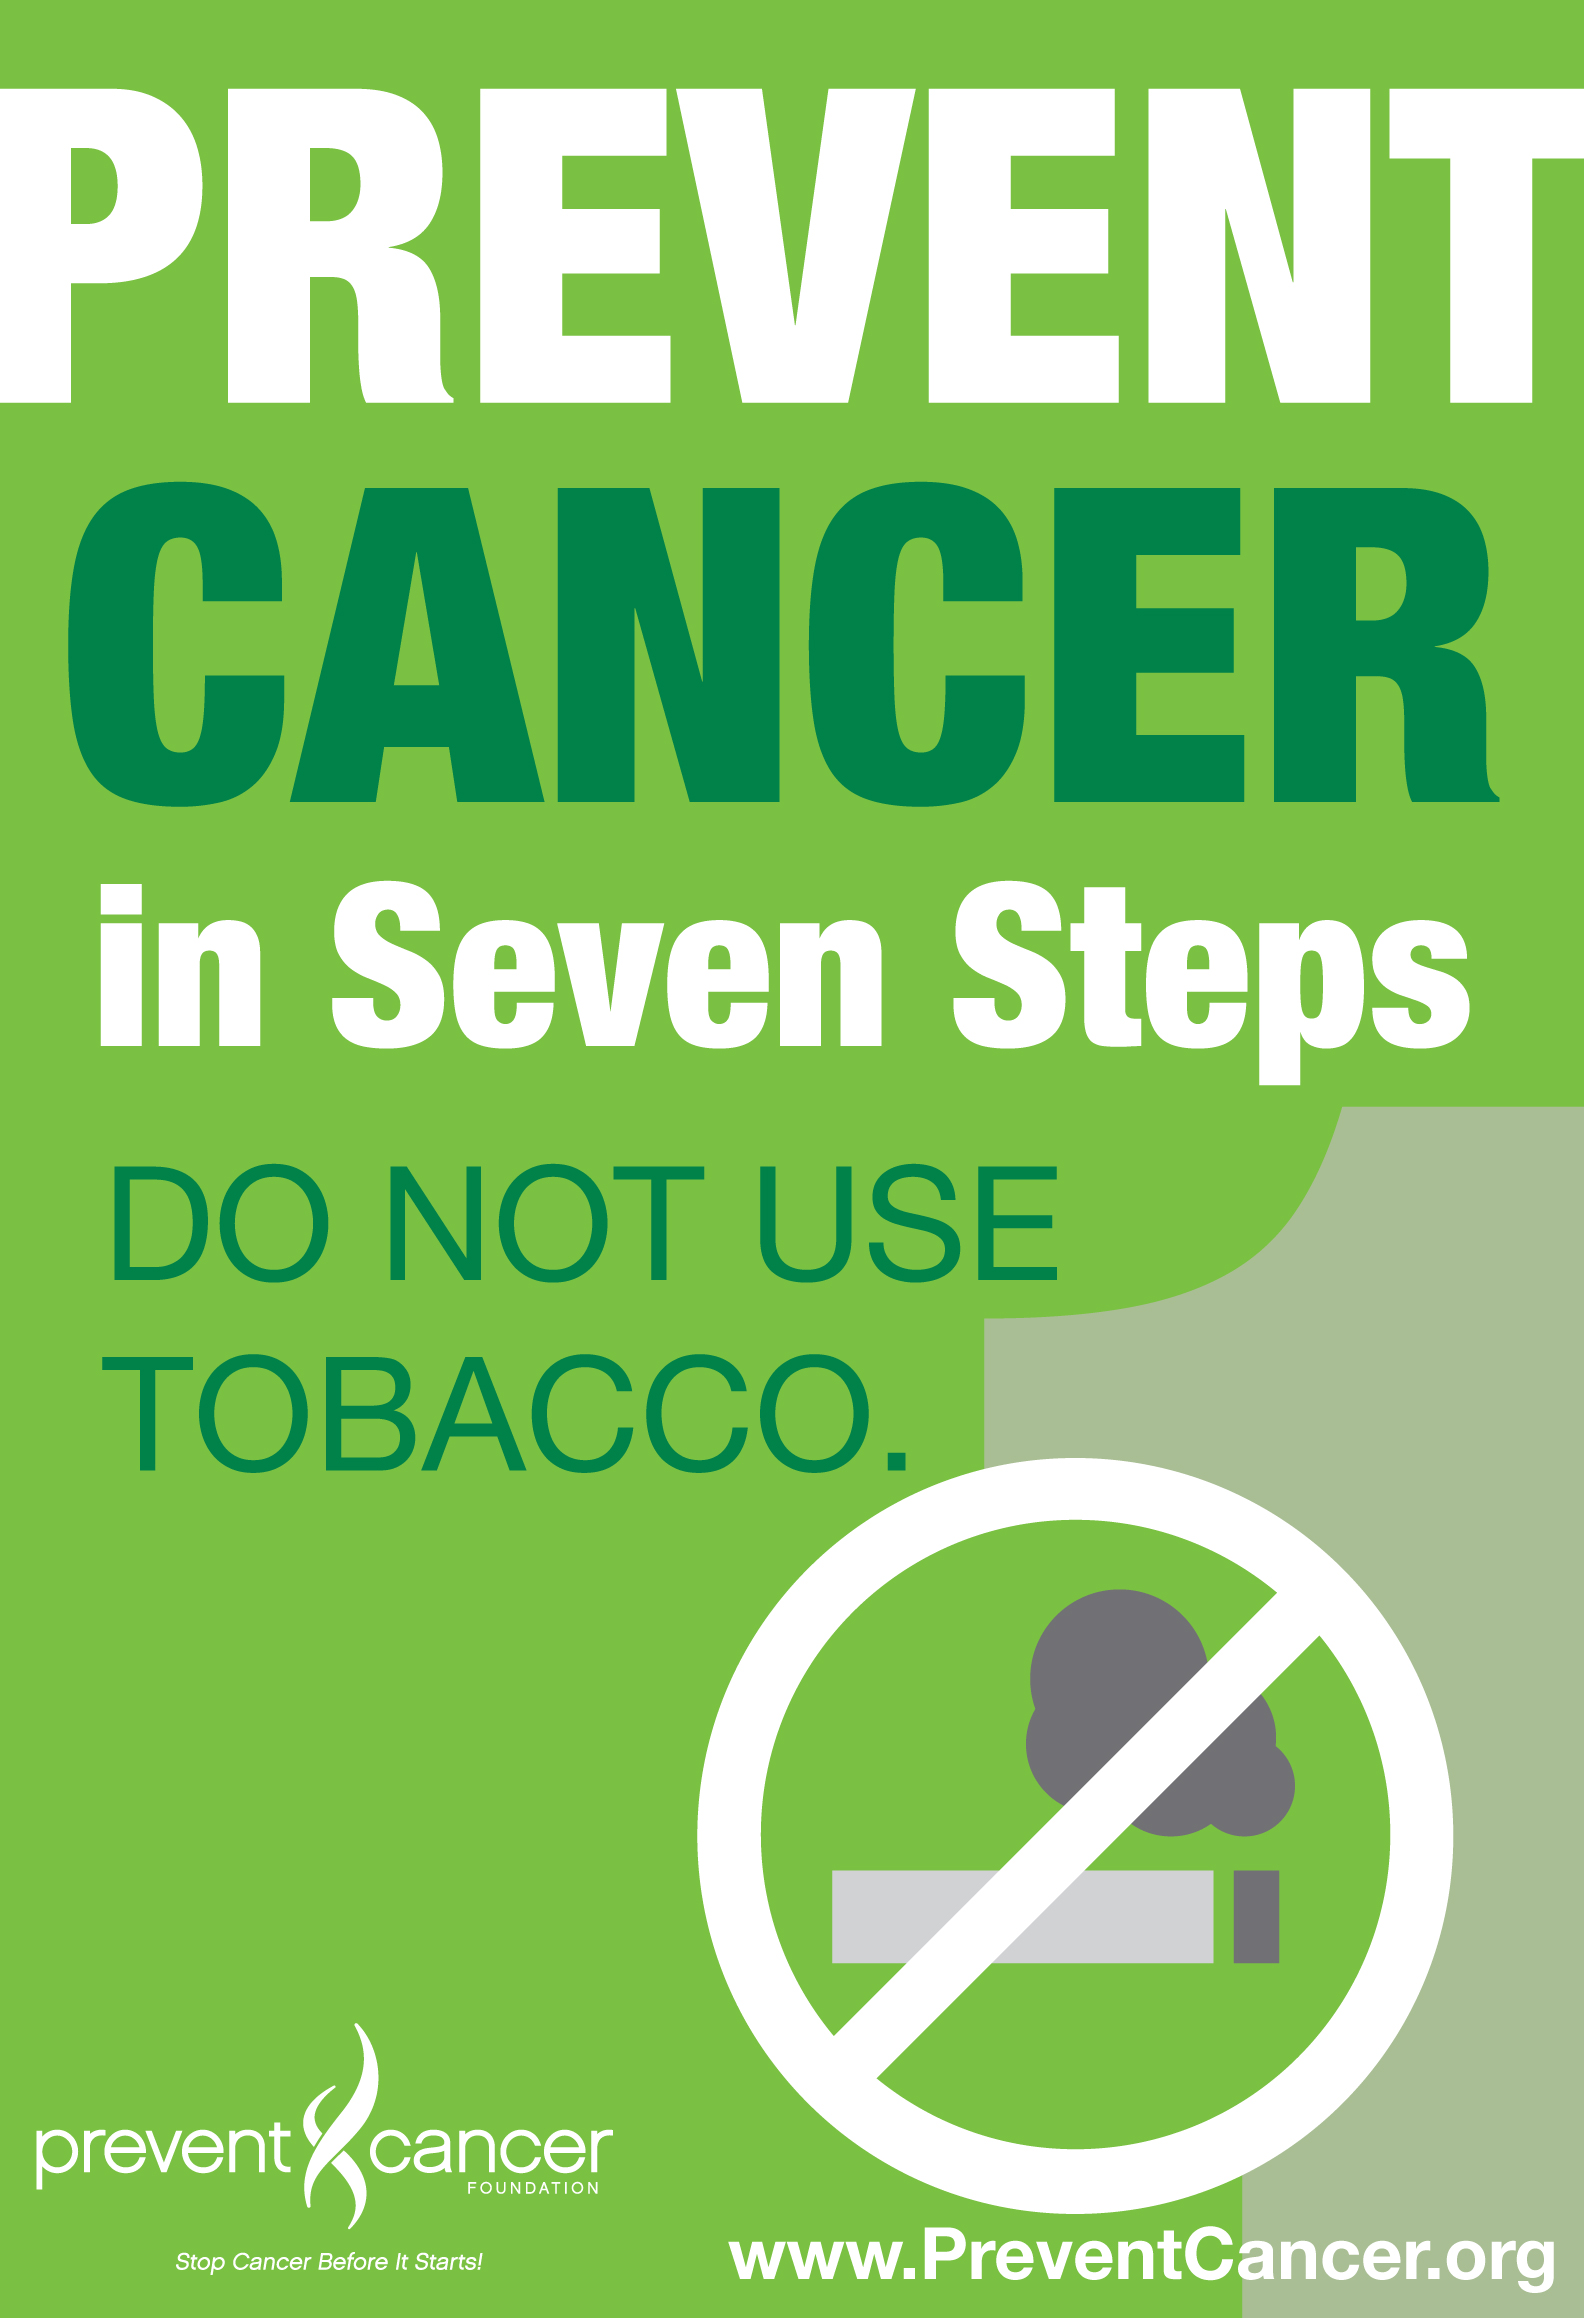 Preventing and screening for Cancer